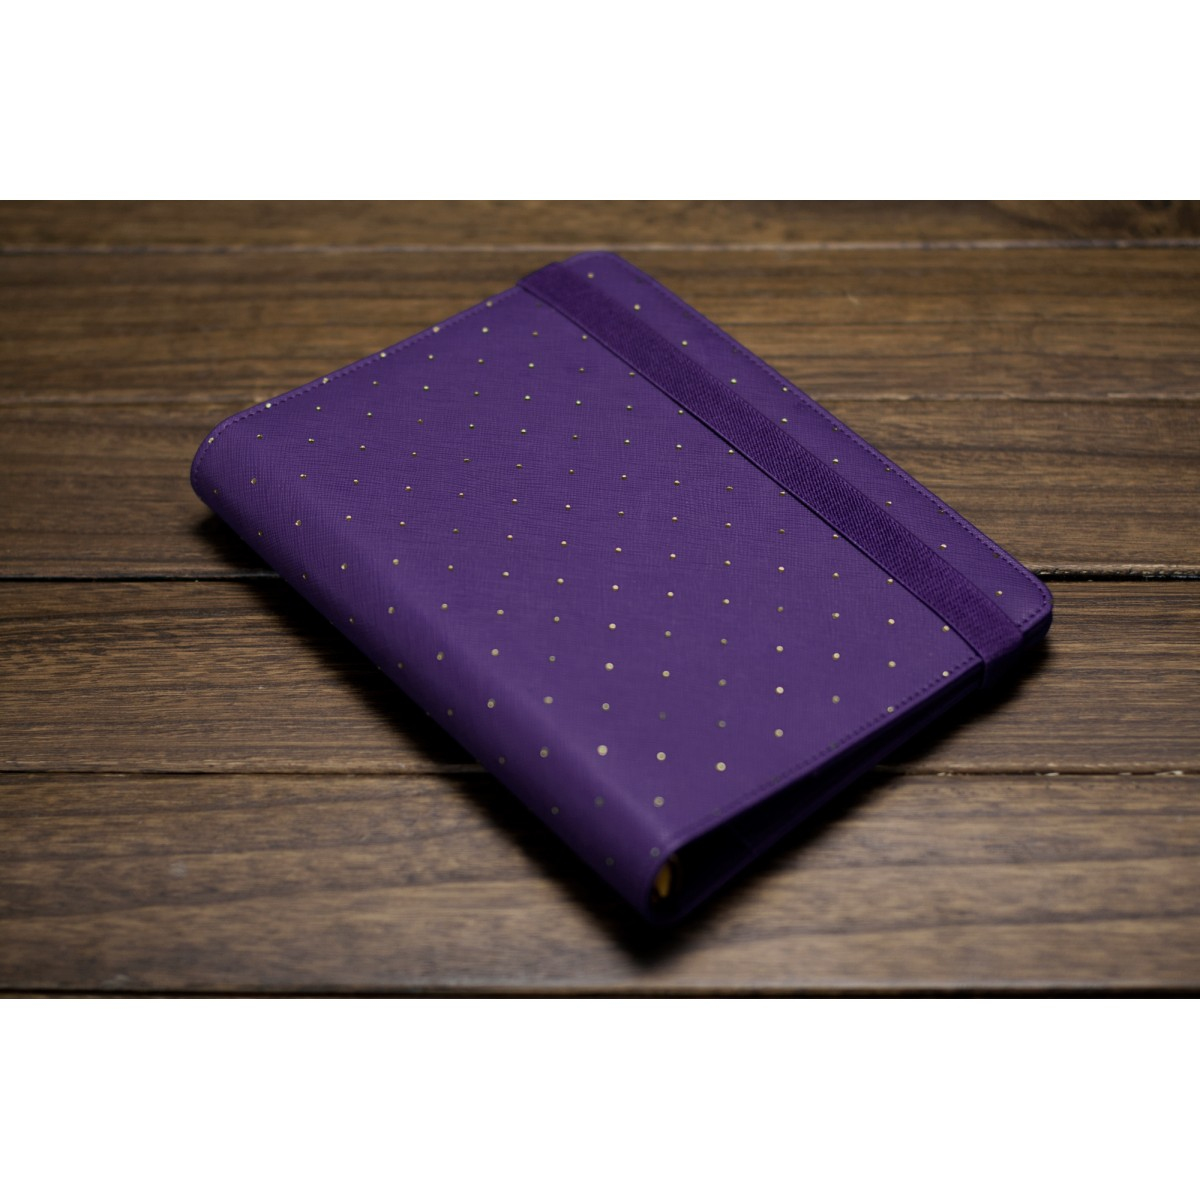 [Minor Flaw] DOKIBOOK ROYAL PURPLE LARGE